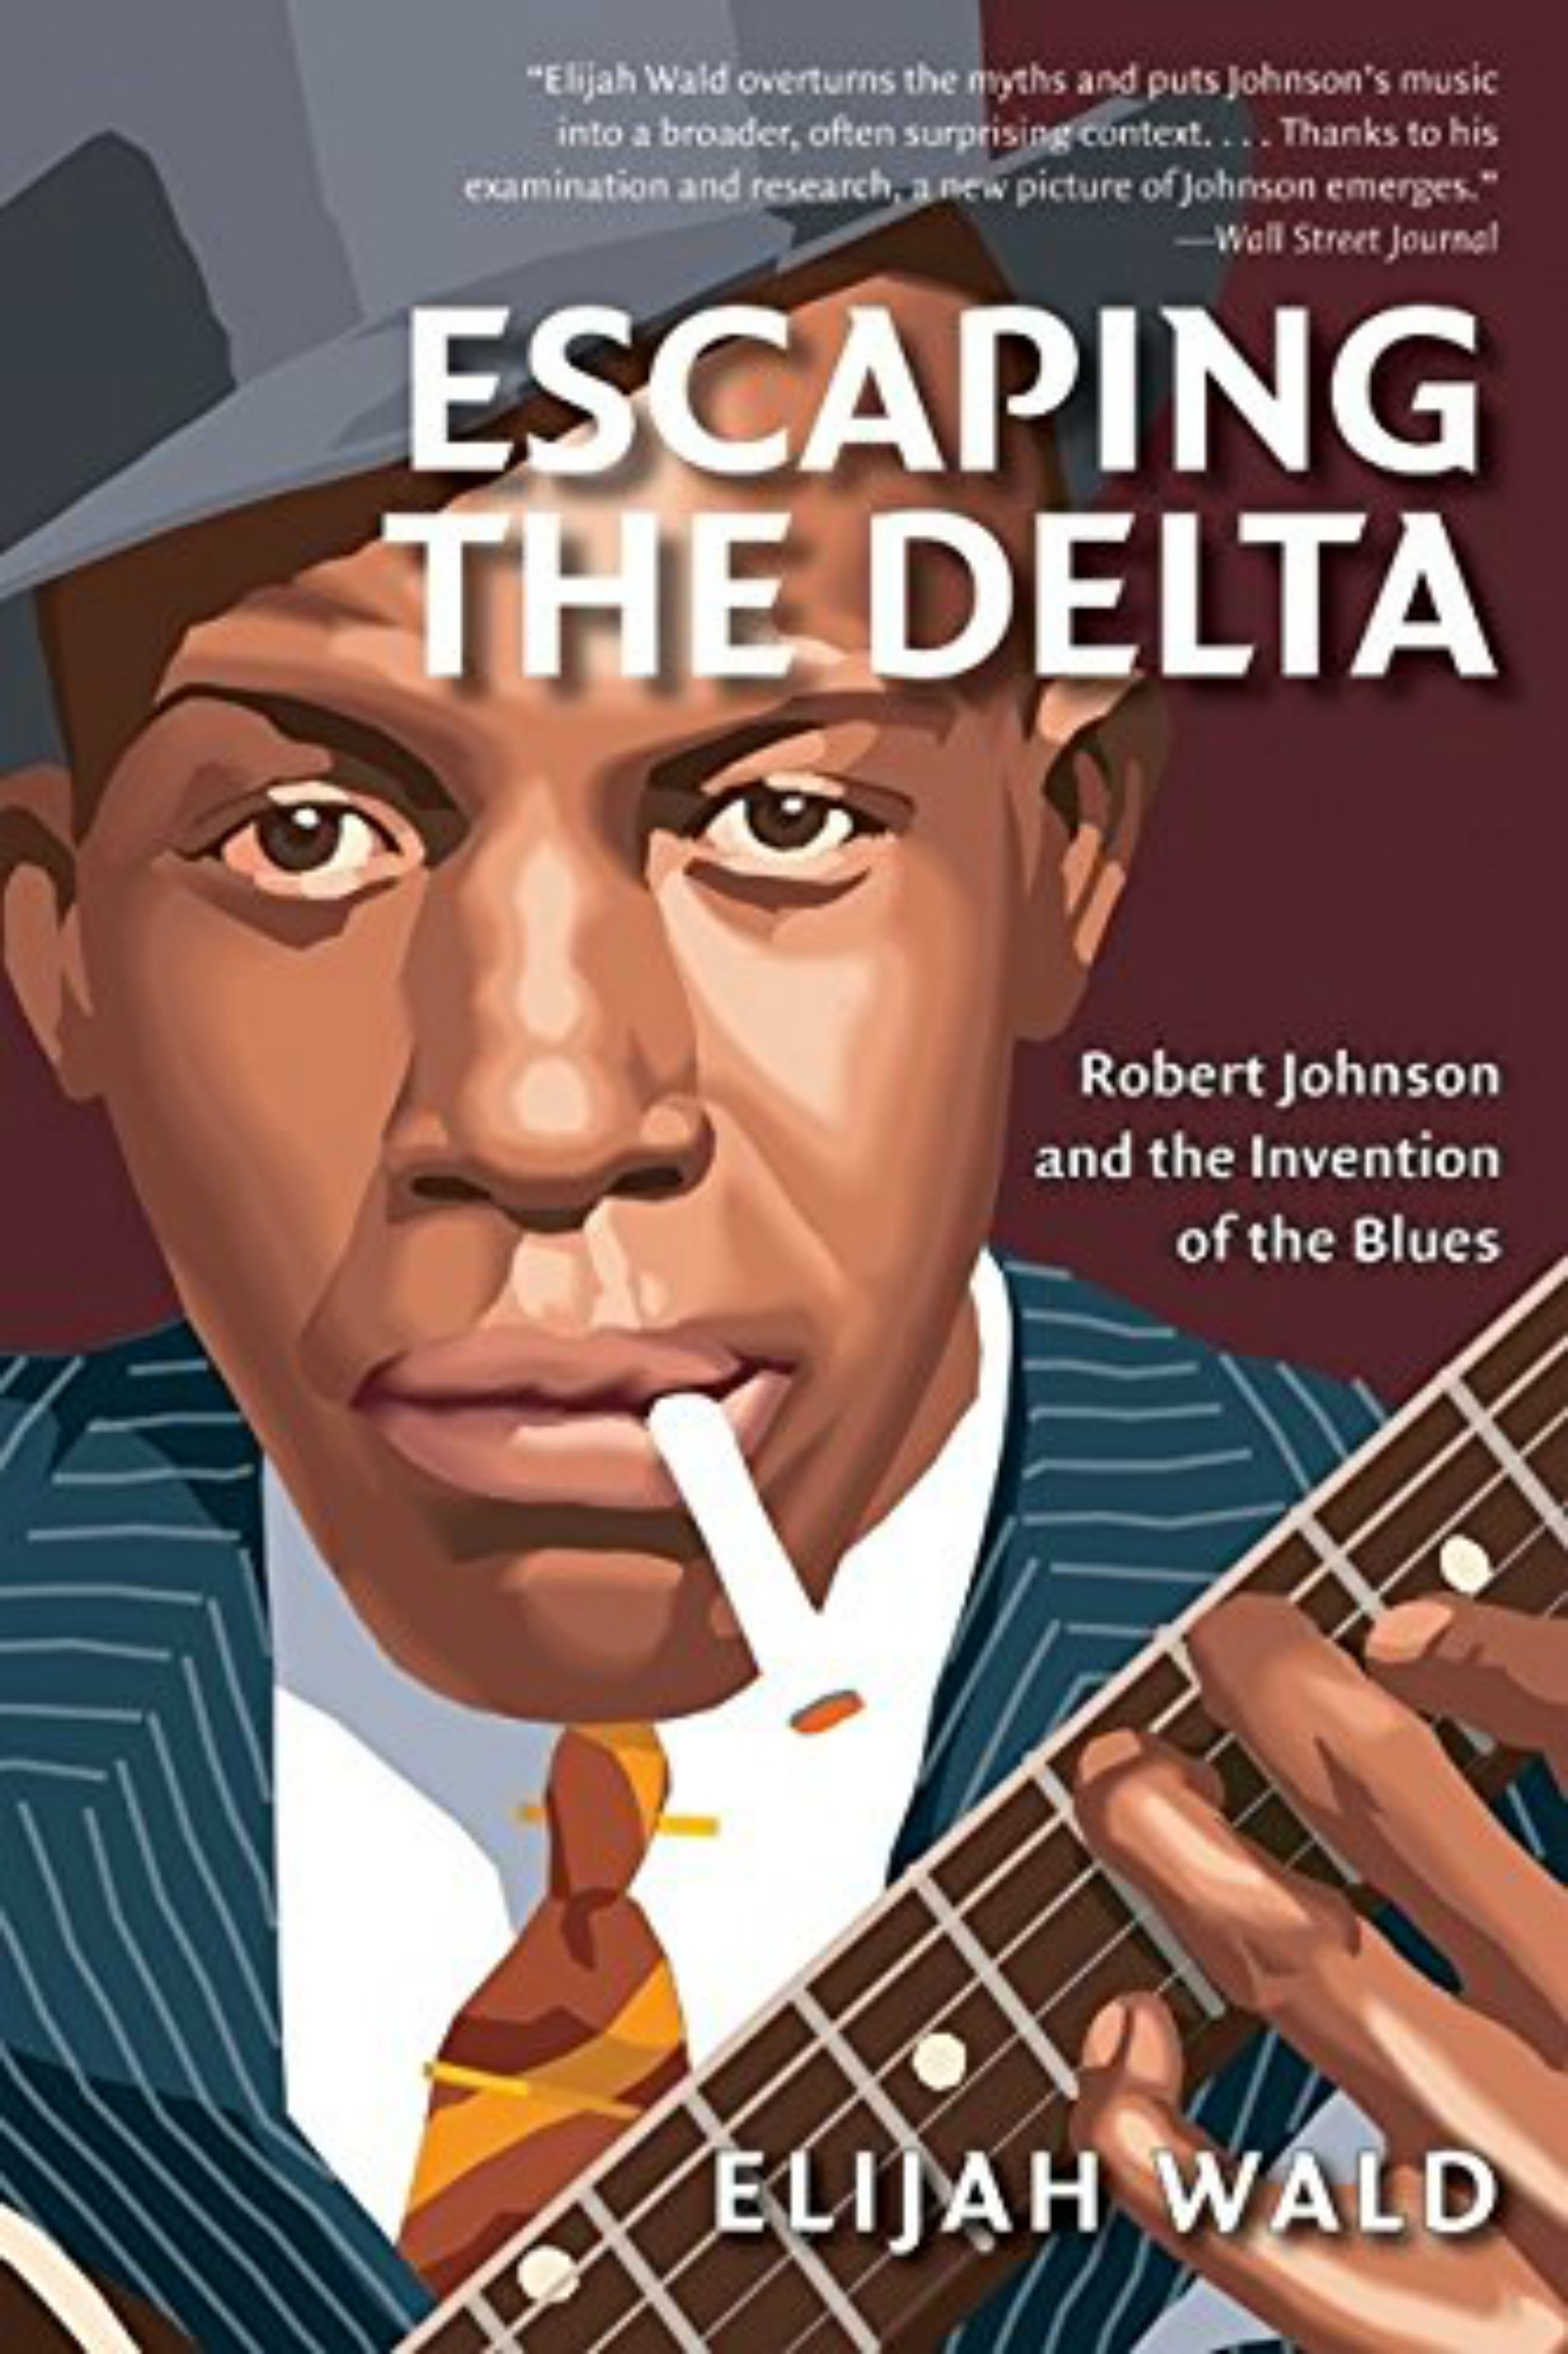 Book cover, Escaping The Delta - Robert Johnson and the Invention of the Blues, by Elijah Wald.